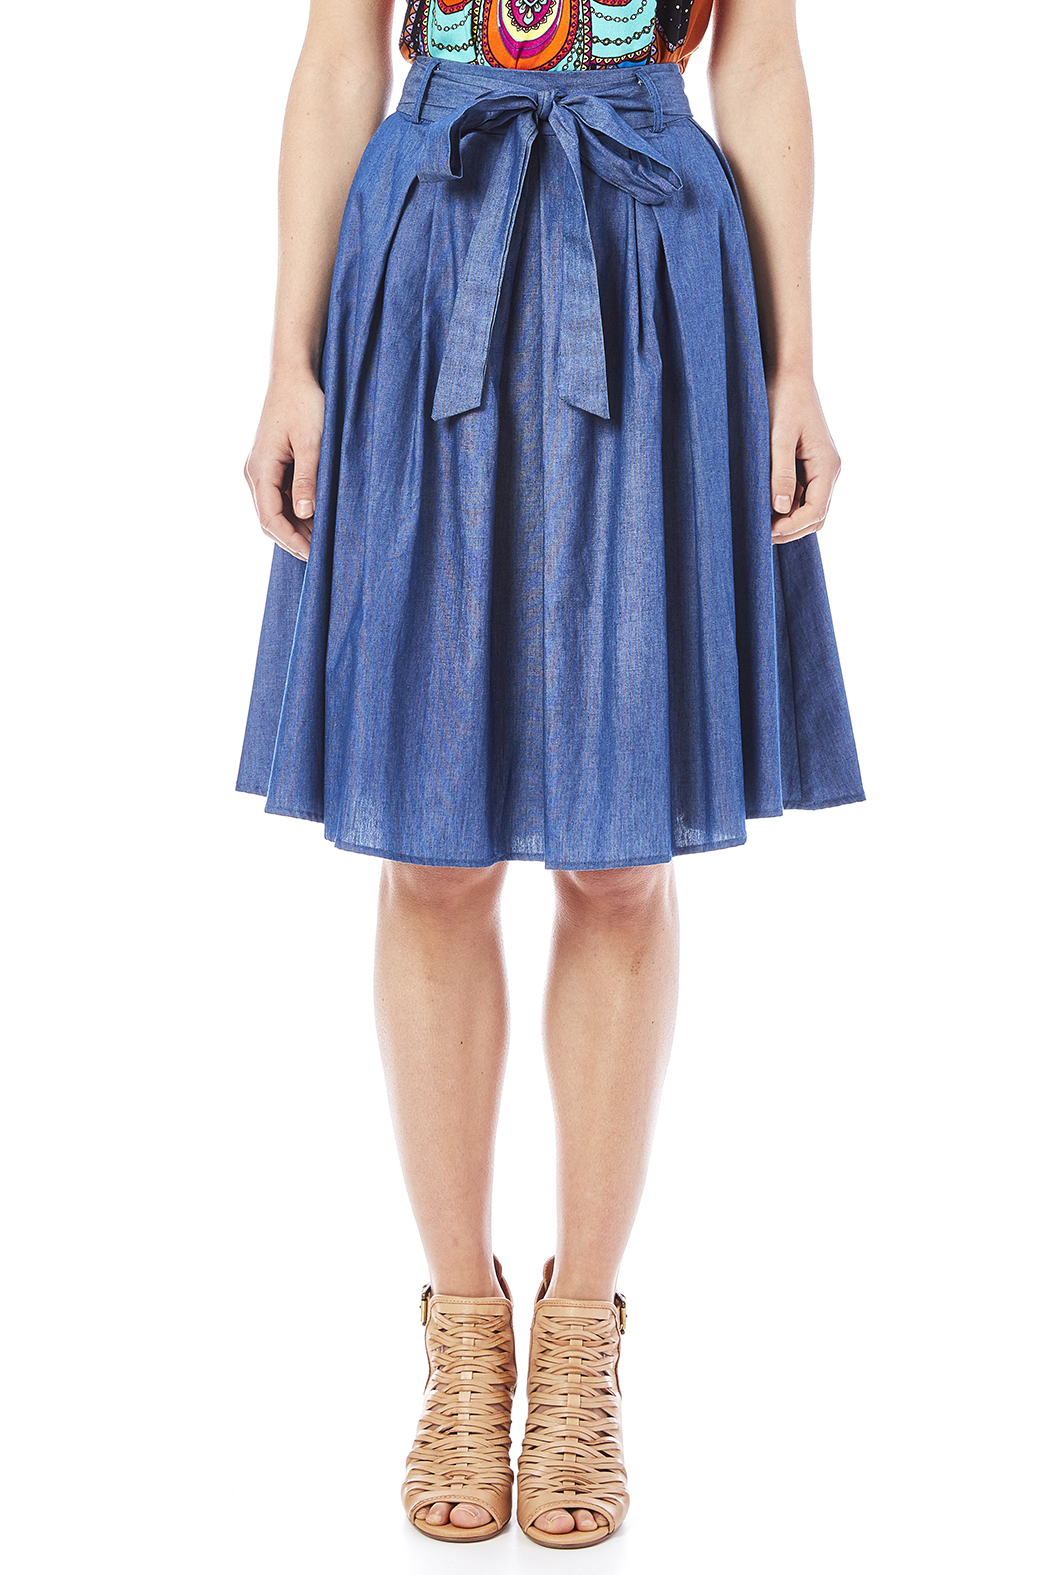 Pink Penguin Flowy Denim Skirt from West Village — Shoptiques